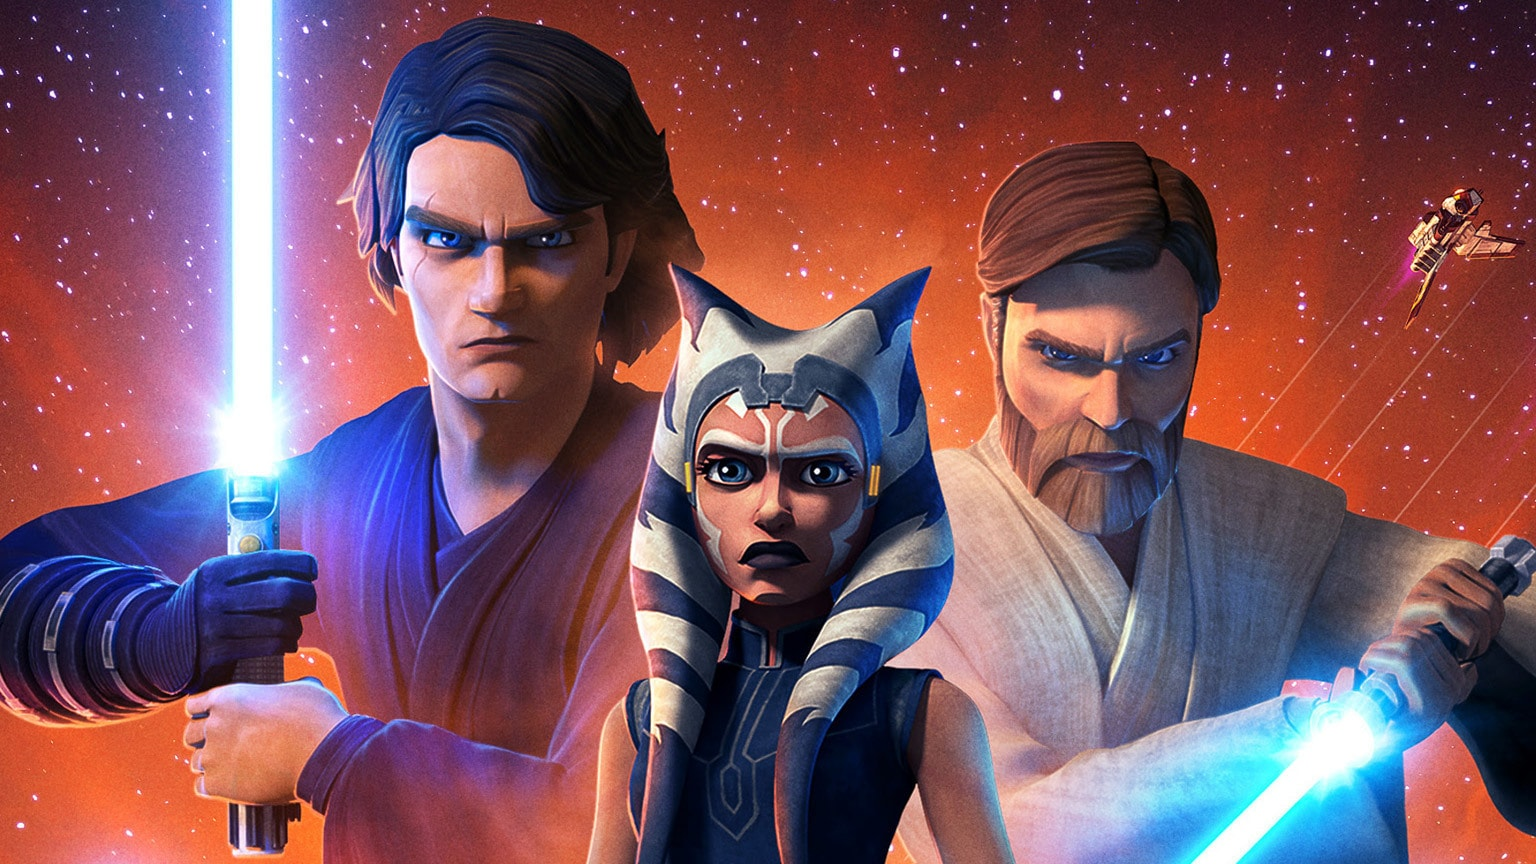 Star Wars: The Clone Wars Returns on Disney+ February 21